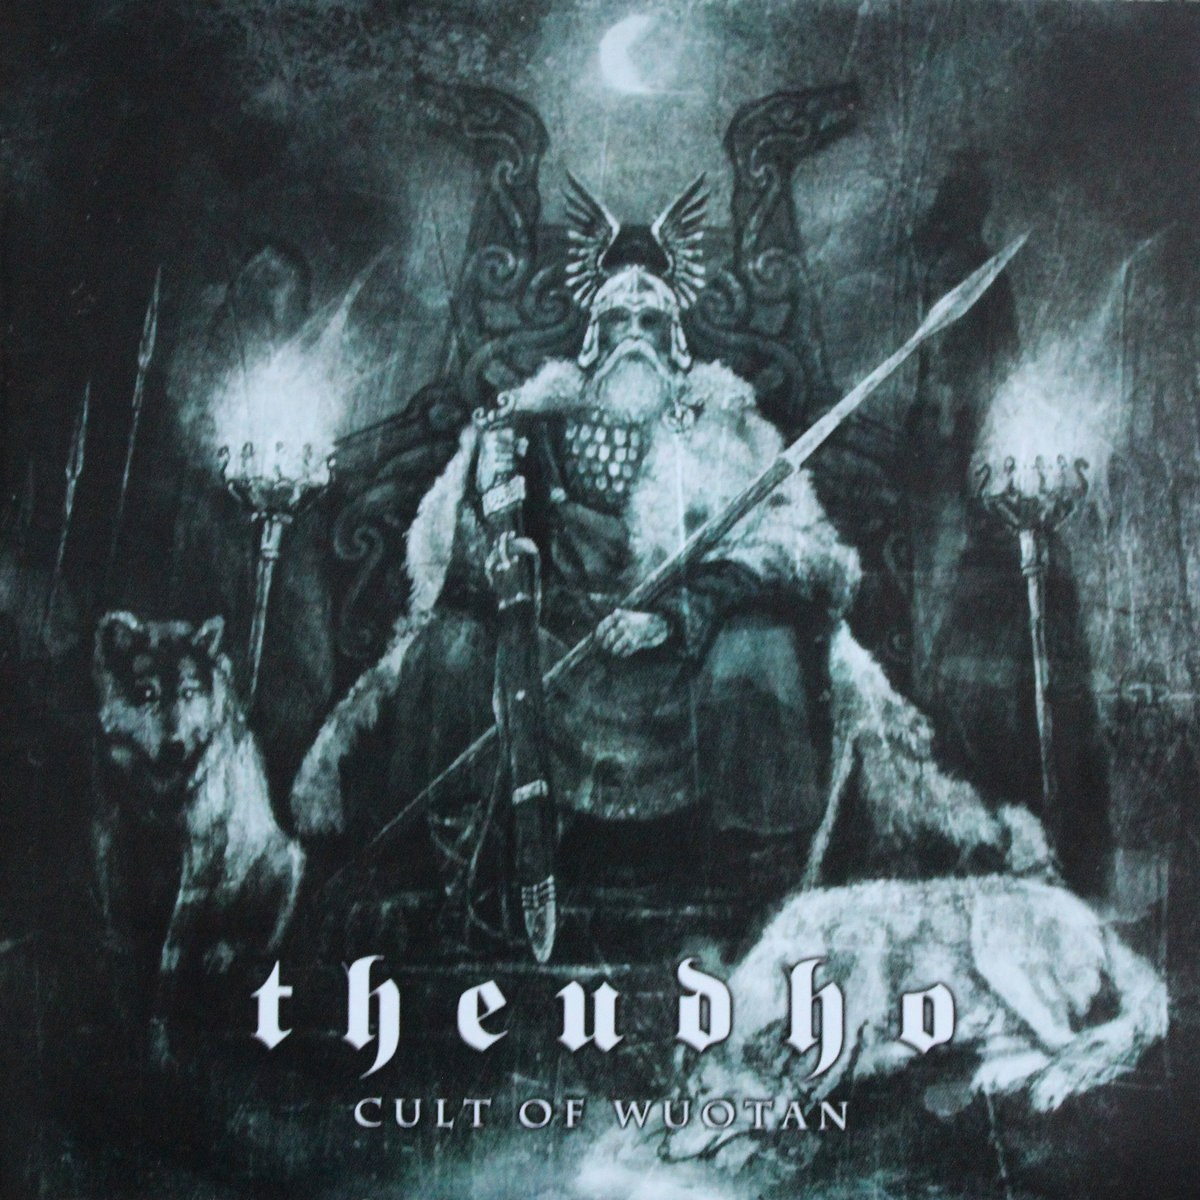 Review for Theudho - Cult of Wuotan